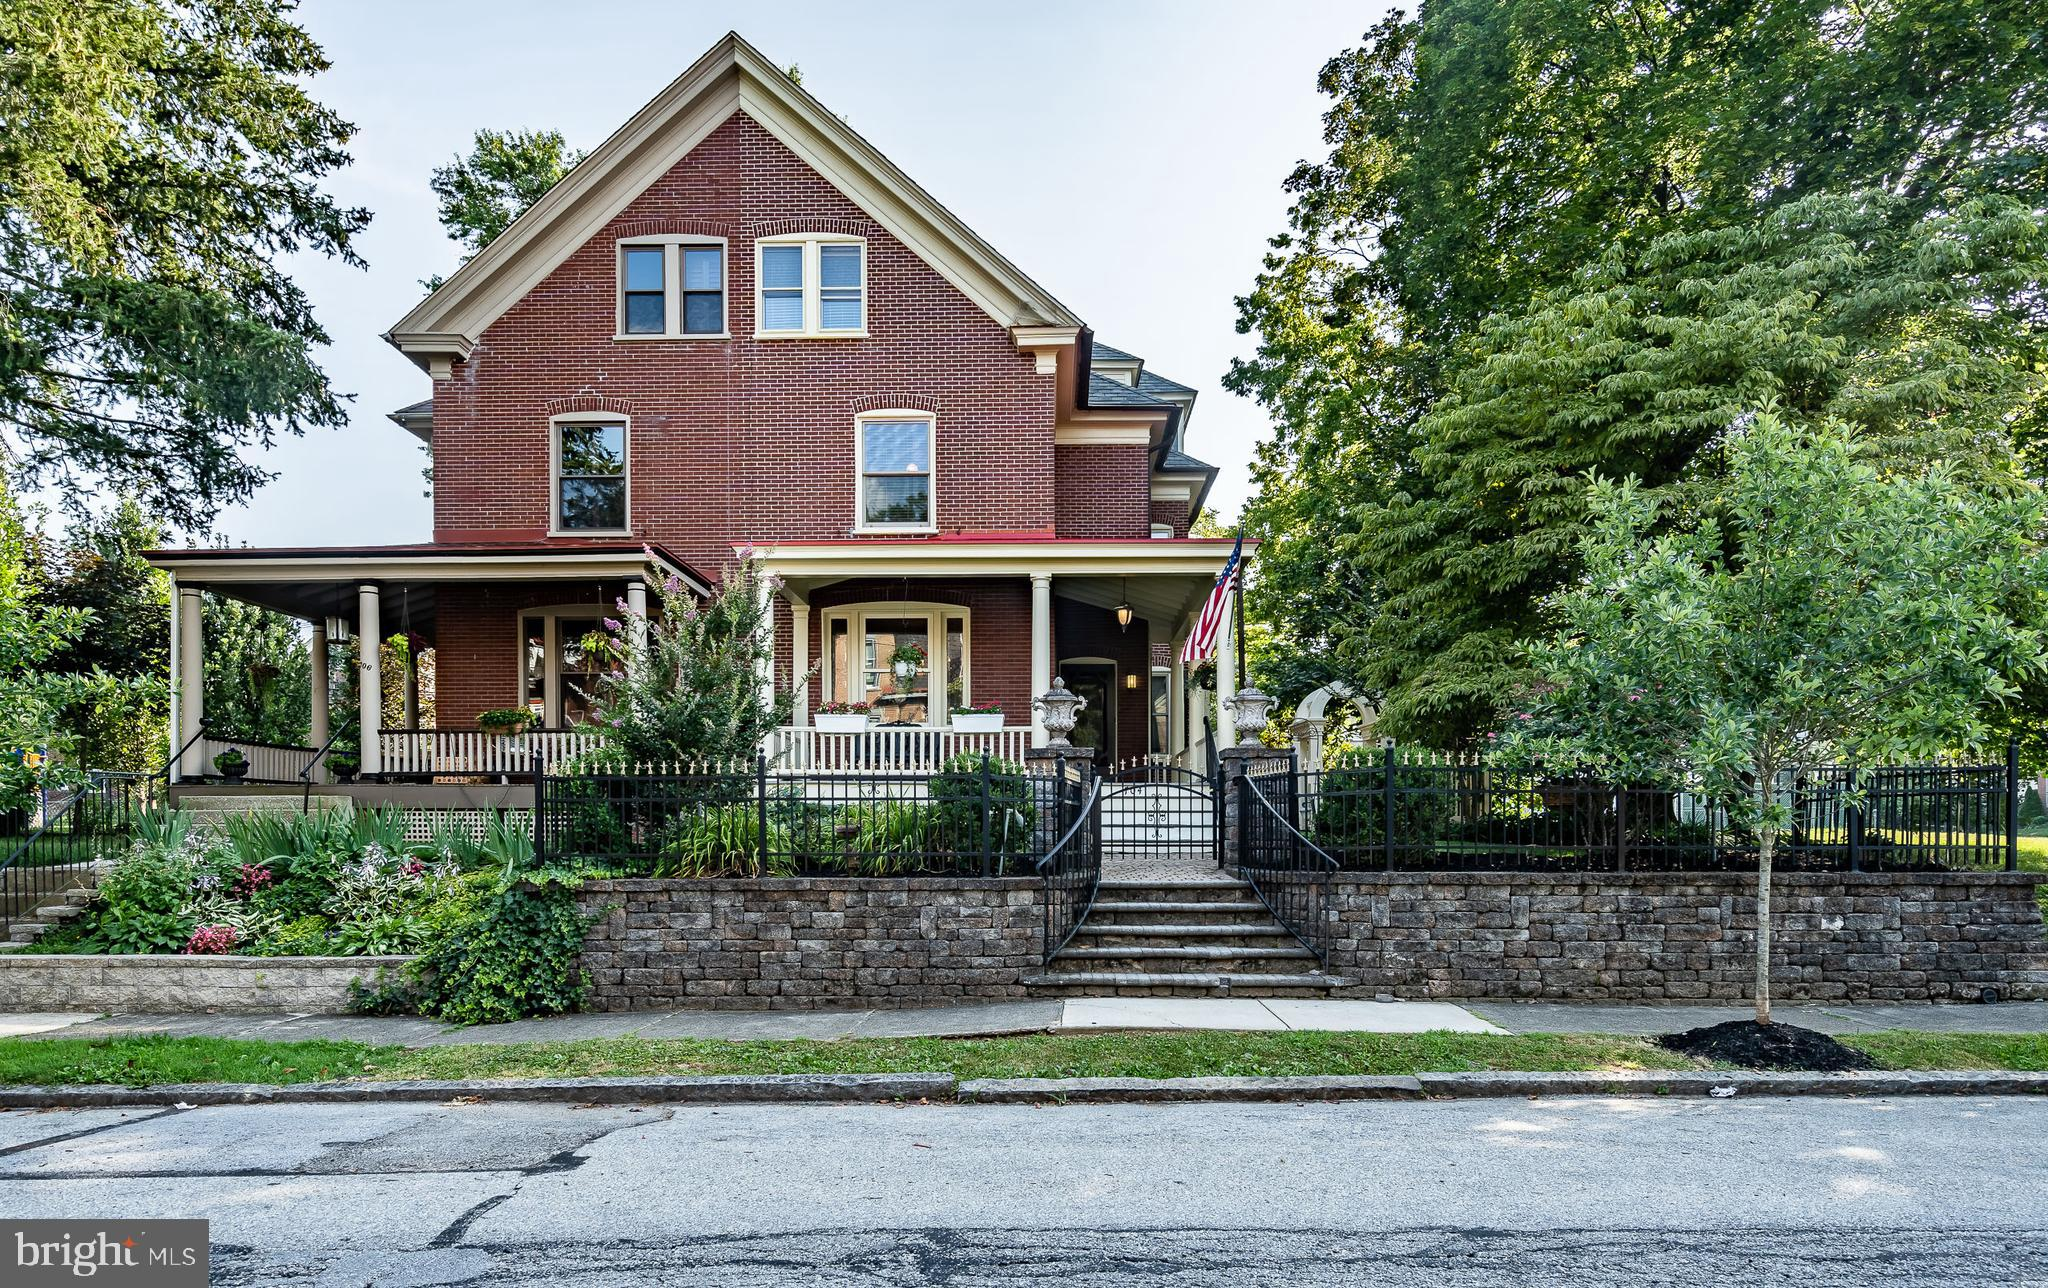 Spectacular updated both inside and out Victorian twin in the Borough. An entertainers delight paver walkways both front and side. Fantastic backyard with large entertainment area. Waterfall, koi pond, covered front and side porch, outdoor second floor deck and detached modern brick 2 car garage. You will enter and feel all the original charm as you go into the vestibule. Entry foyer leads you to the formal living room with impressive moldings and gas fireplace with ornate mantle. The next area of living space on the main floor has been open up much to give the desirable open concept. A fantastic gourmet kitchen includes large center island, high end granite, stainless steel appliances, architectural lighting, a breakfast area, family room, recessed lighting, exposed brick wall. At the rear of the First floor is convenient entrance from the outside area a full-sized laundry plus a full bath.  Second floor offers 3 bedrooms totally remodeled hall bath, the 3rd floor is unique has outside fire escape entrance additional private entrance as where current owners has used the third-floor area as a legal rental, offers kitchenette full bath, living room and bedroom.  Third floor could also serve as full use by owner making it a 5 bedroom 3 bath single family with no alterations. The character on all 3 floors offers its original character to include, high end wood flooring, tall ceilings, and exposed brick walls. Radiator, natural gas heat, 2 separate air conditioning zones makes all 3 floors centrally aired. The second floor also offers an outside entertainment deck, this is a one-of-a-kind property that the current owners restored through painstakingly sparing no expense. Please view the video tour.